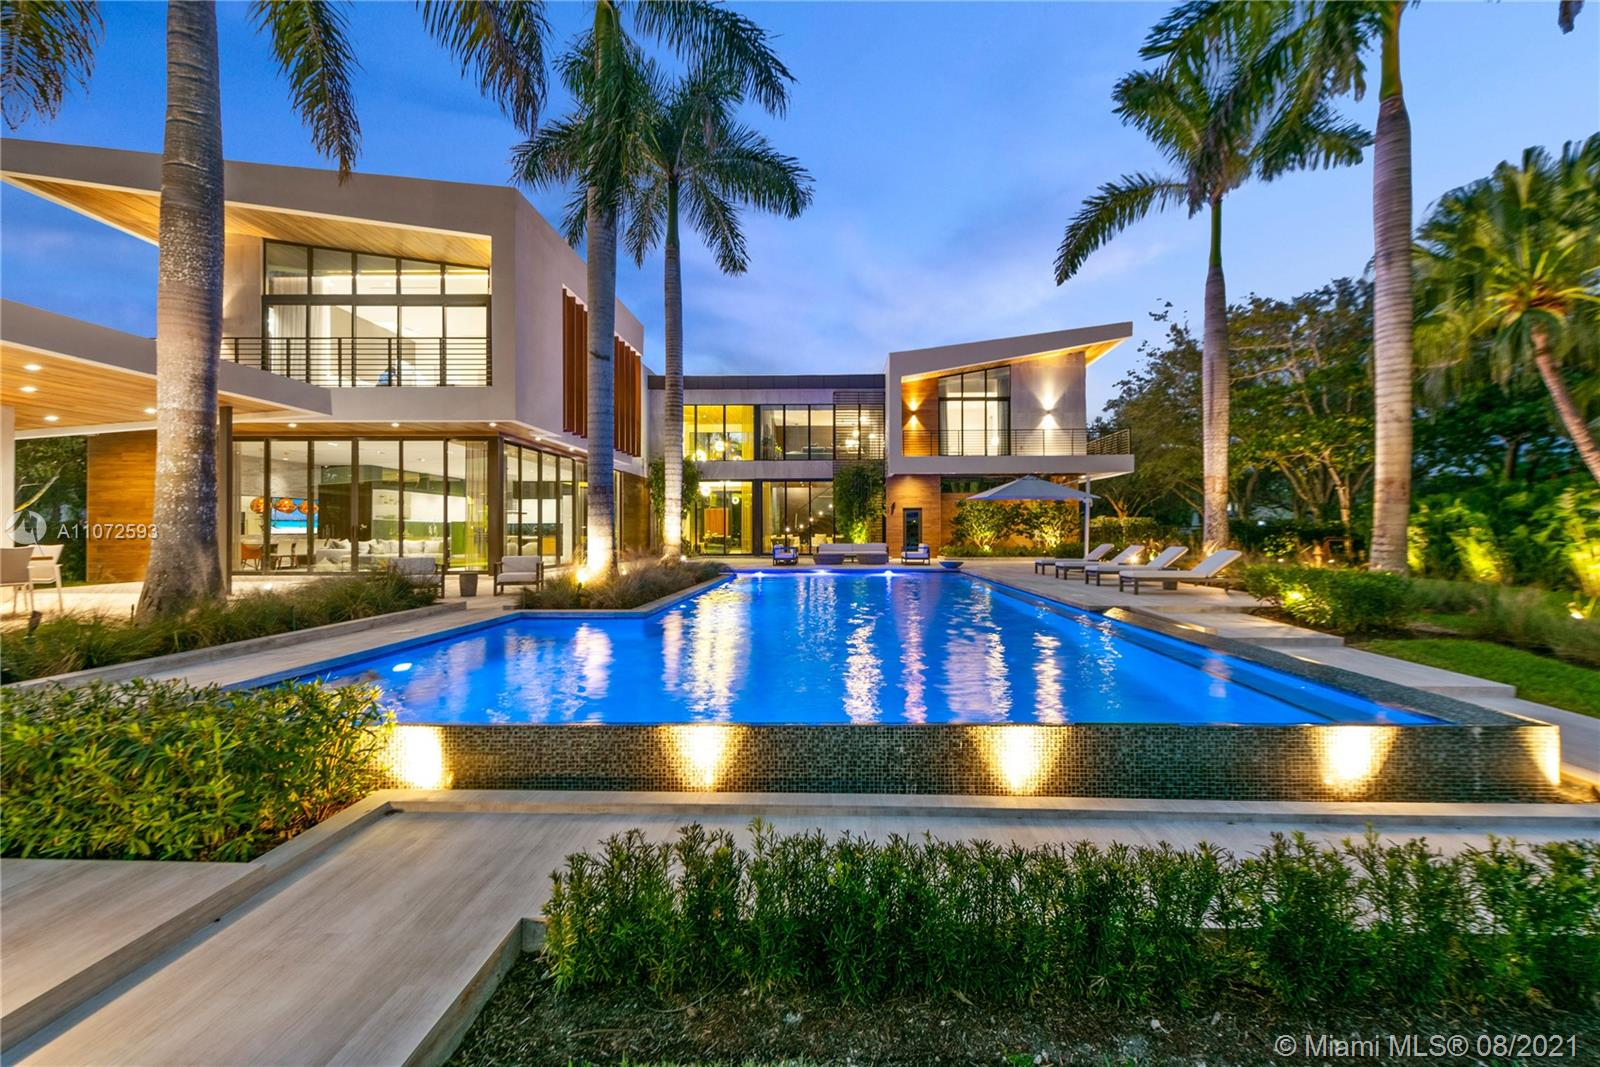 """A one of kind NEW MODERN MASTERPIECE that has been developed with incredible detail that exemplifies the true meaning of luxury. Situated in the most exclusive gated communities in Weston, on a 1.60 acre lot, this unique home overlooks a spectacular long open lake view. The state of the art features: HD security cameras with commercial grade system (13 cameras) direct access from home, phone, &computer. Smart home with 2 APPL ipads/lutron syst controlling all lights, surround system throughout home/pool & cameras, accessible from anywhere in the world. Full house generator & top of the line appliances w/ a Butler's pantry..list goes on.The """"resort"""" feel & architect of this home is one to see. An opportunity to own a piece of art in Weston has arrived. Furnished. Features sheet attached."""